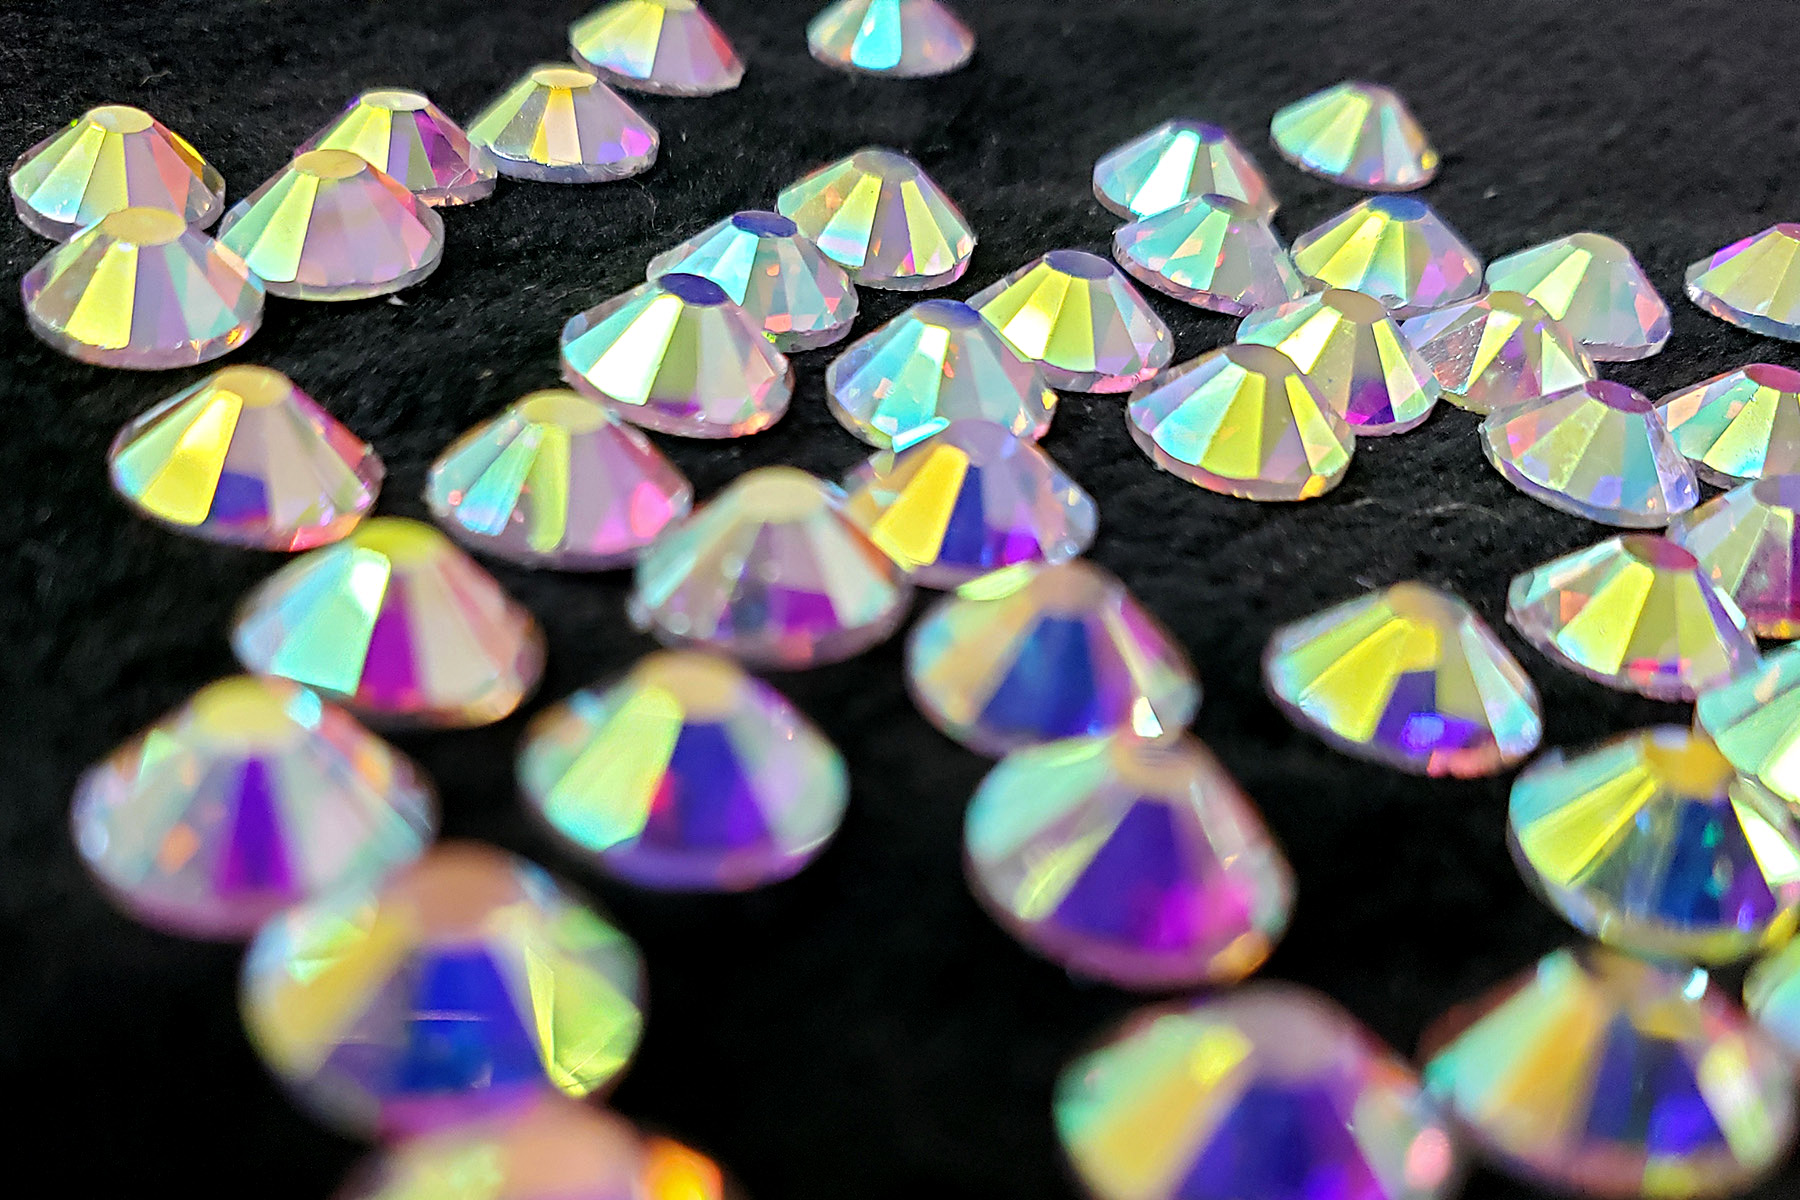 A large pile of iridescent rhinestones against a black background.